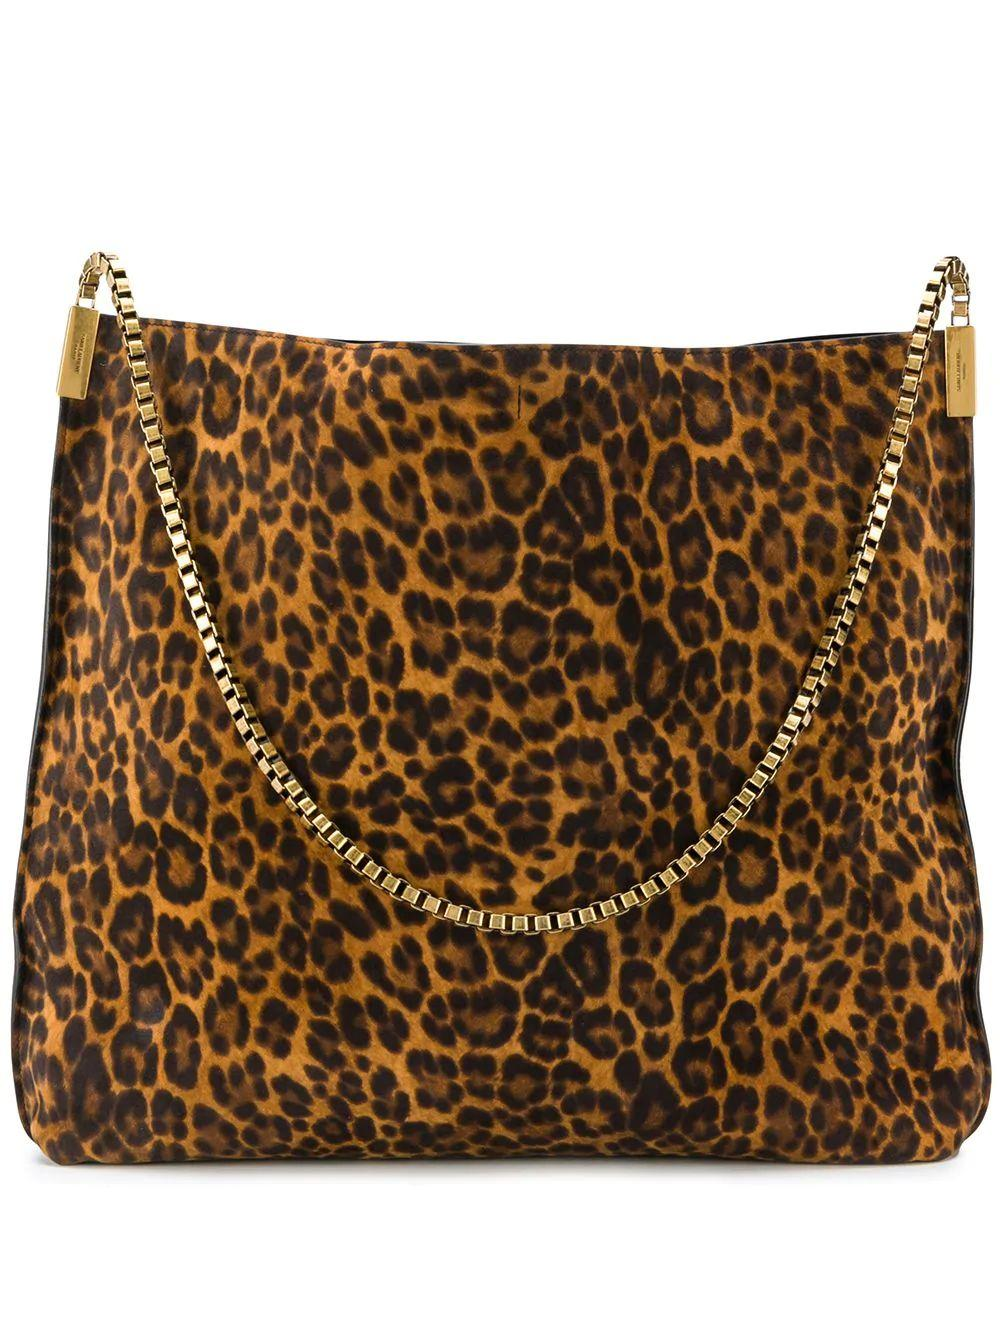 Suzanne Leopard Hobo Item # 6348041Q1AW